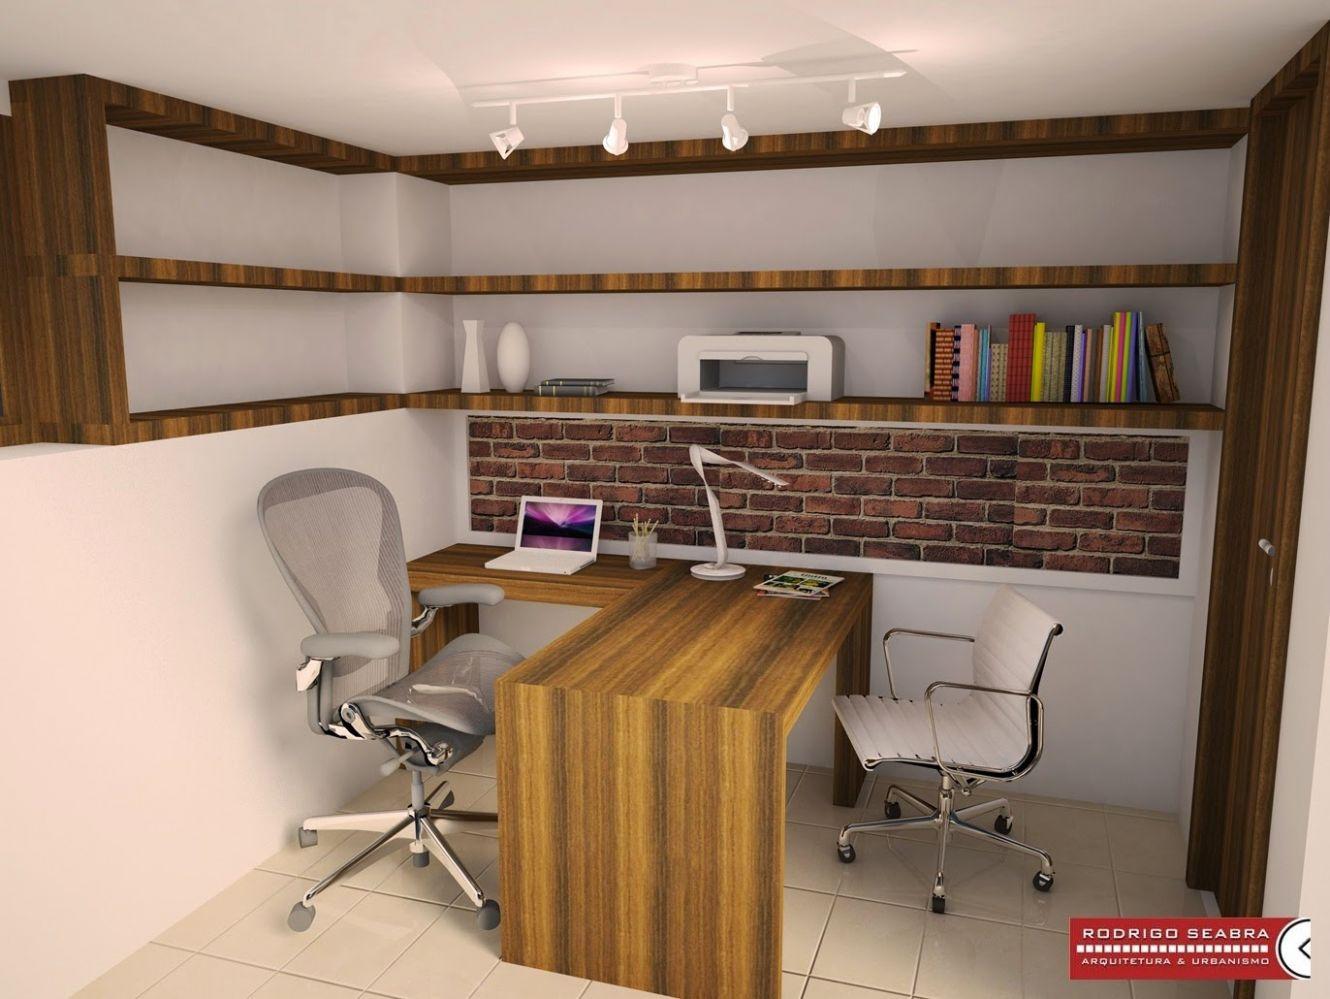 backyard landscaping: Decorating Ideas for Home Office with No Windows